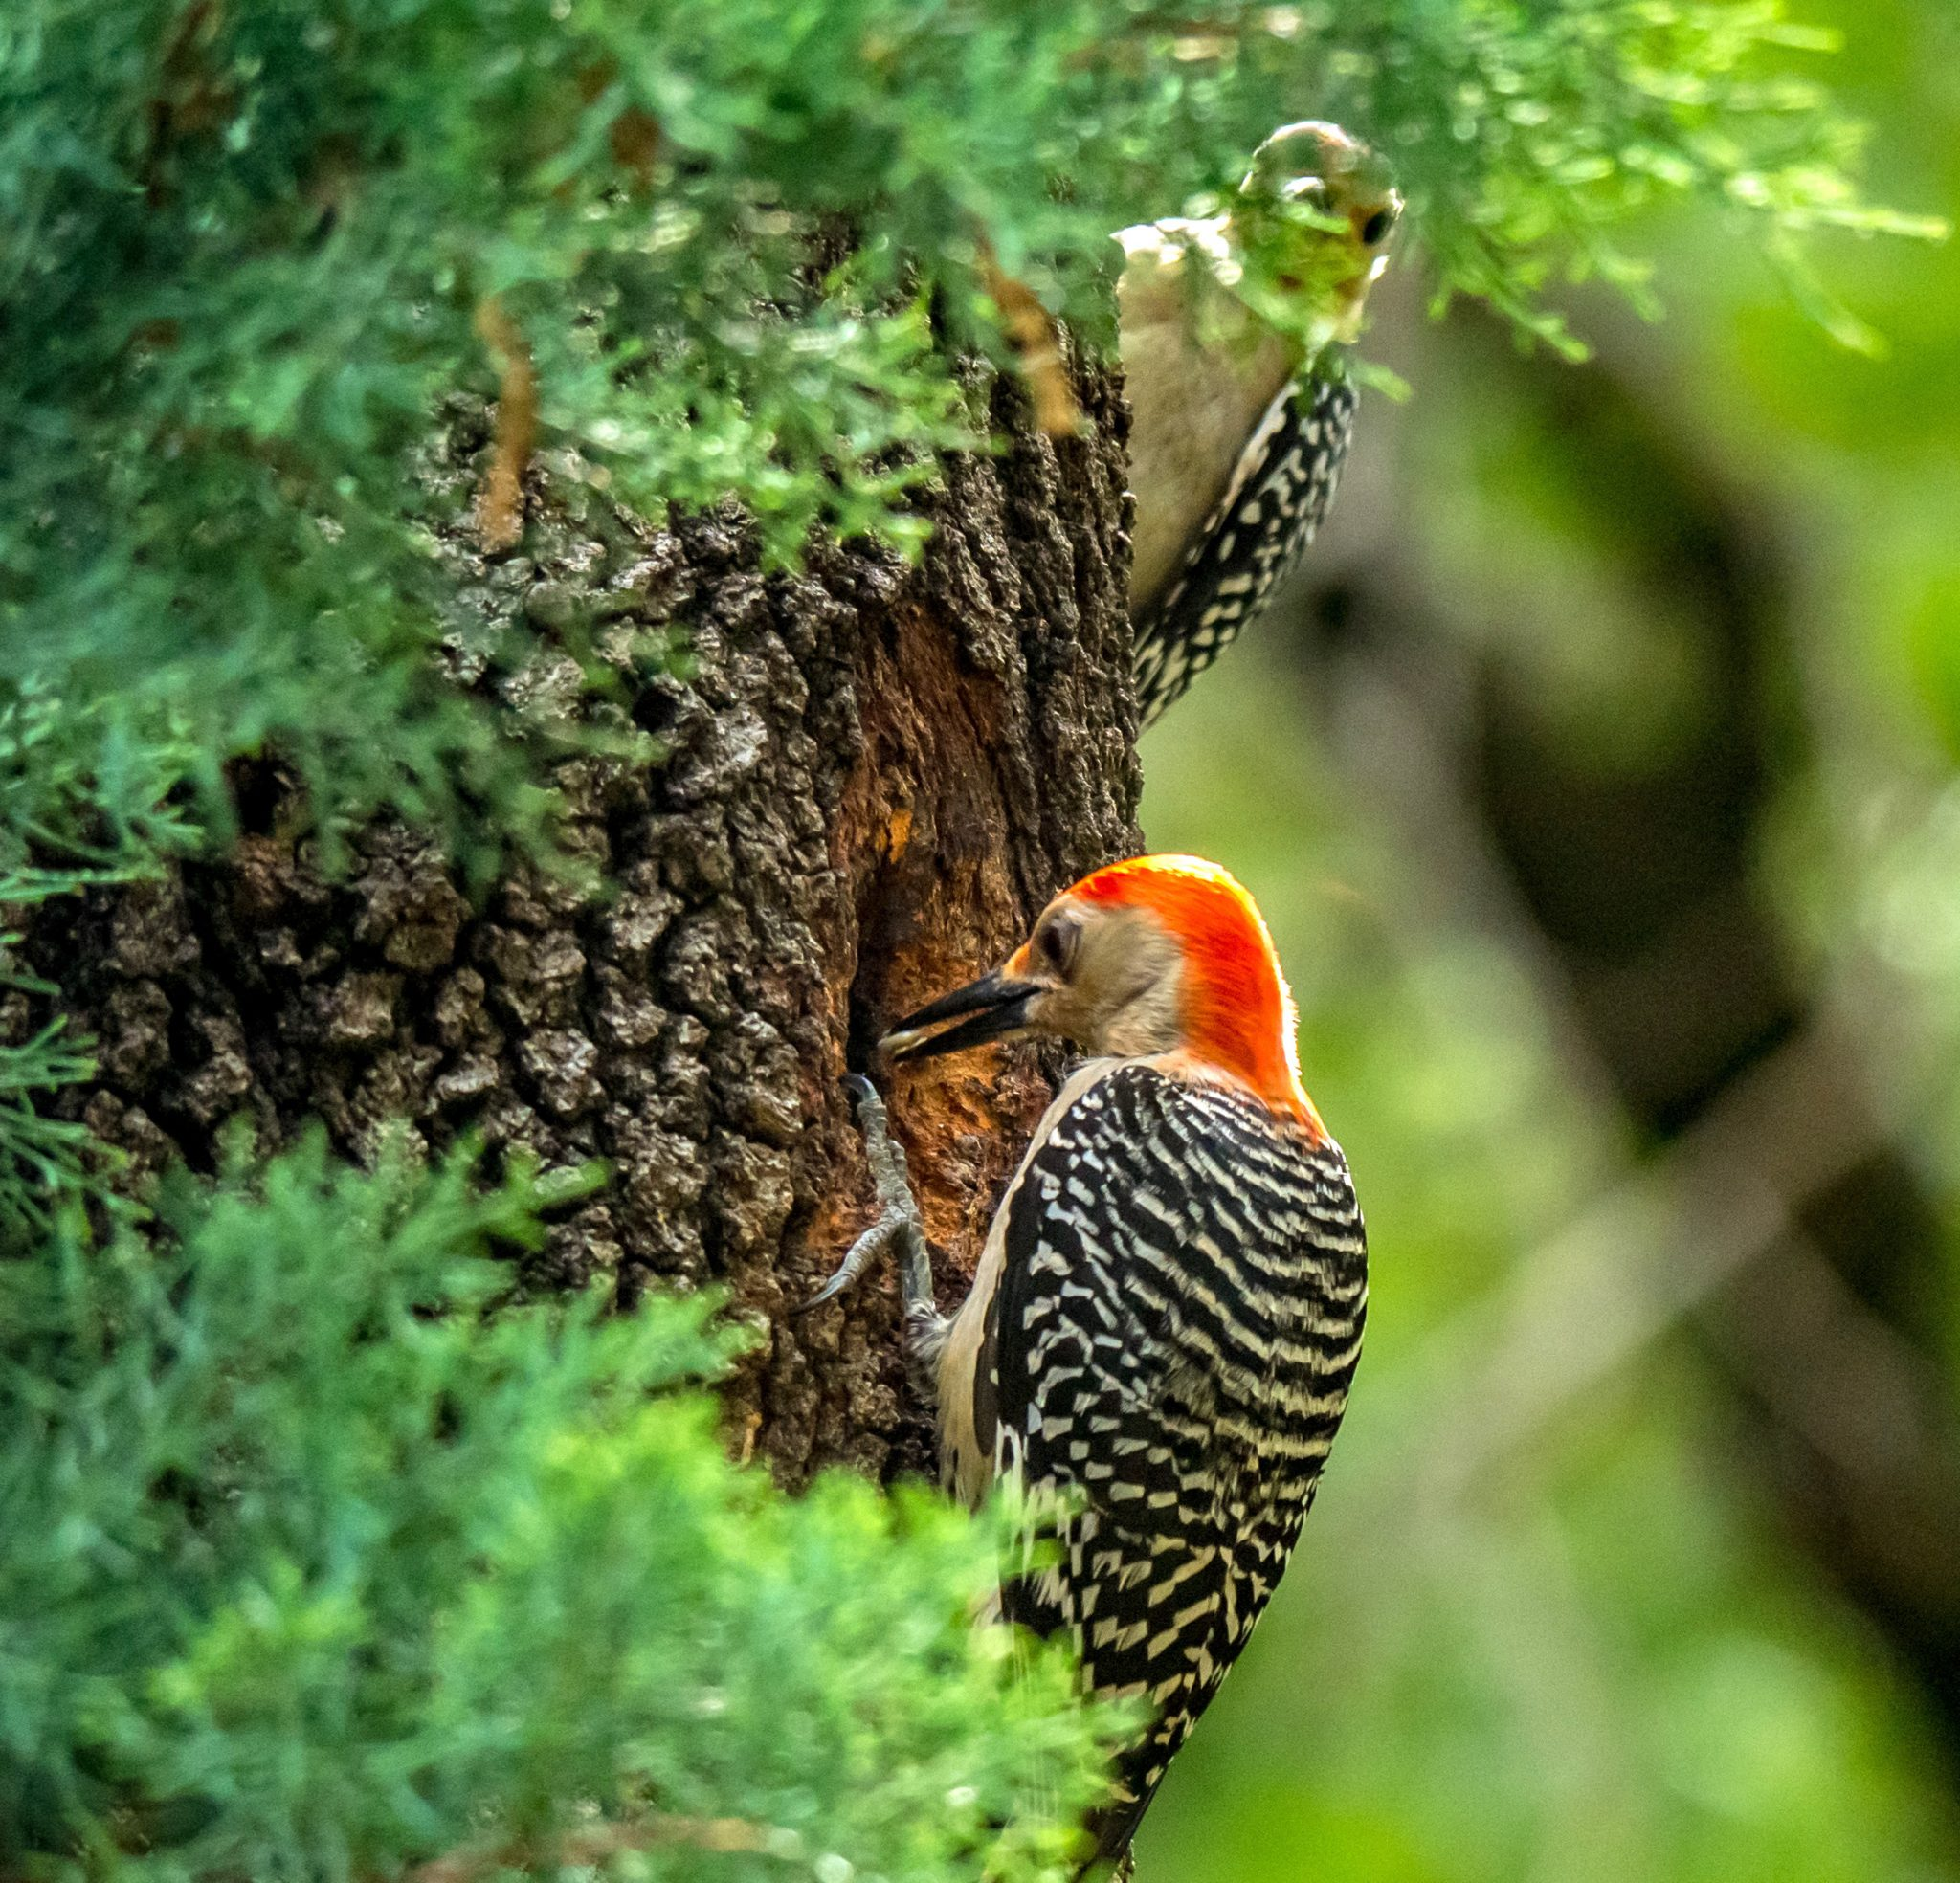 Red-Bellied Woodpecker | Photo by Richard Greene